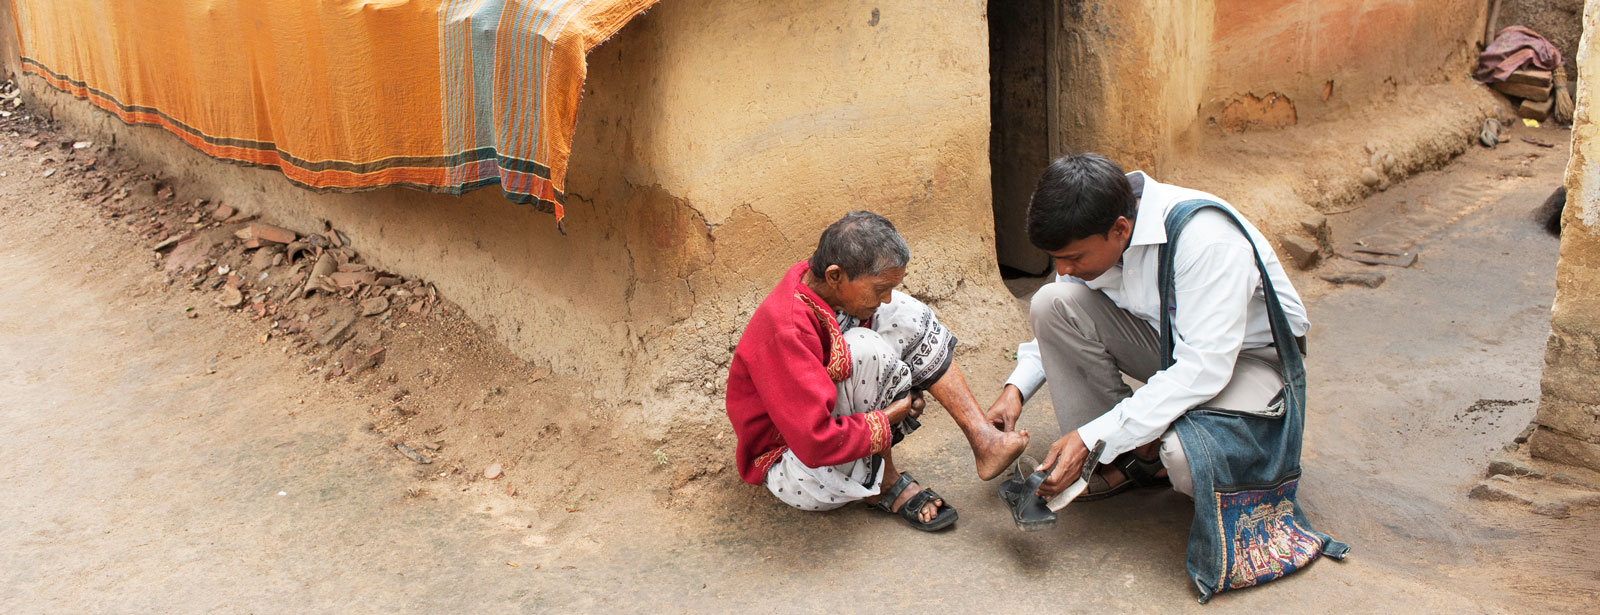 A GFA-supported pastor cuts the nails of a leprosy patient